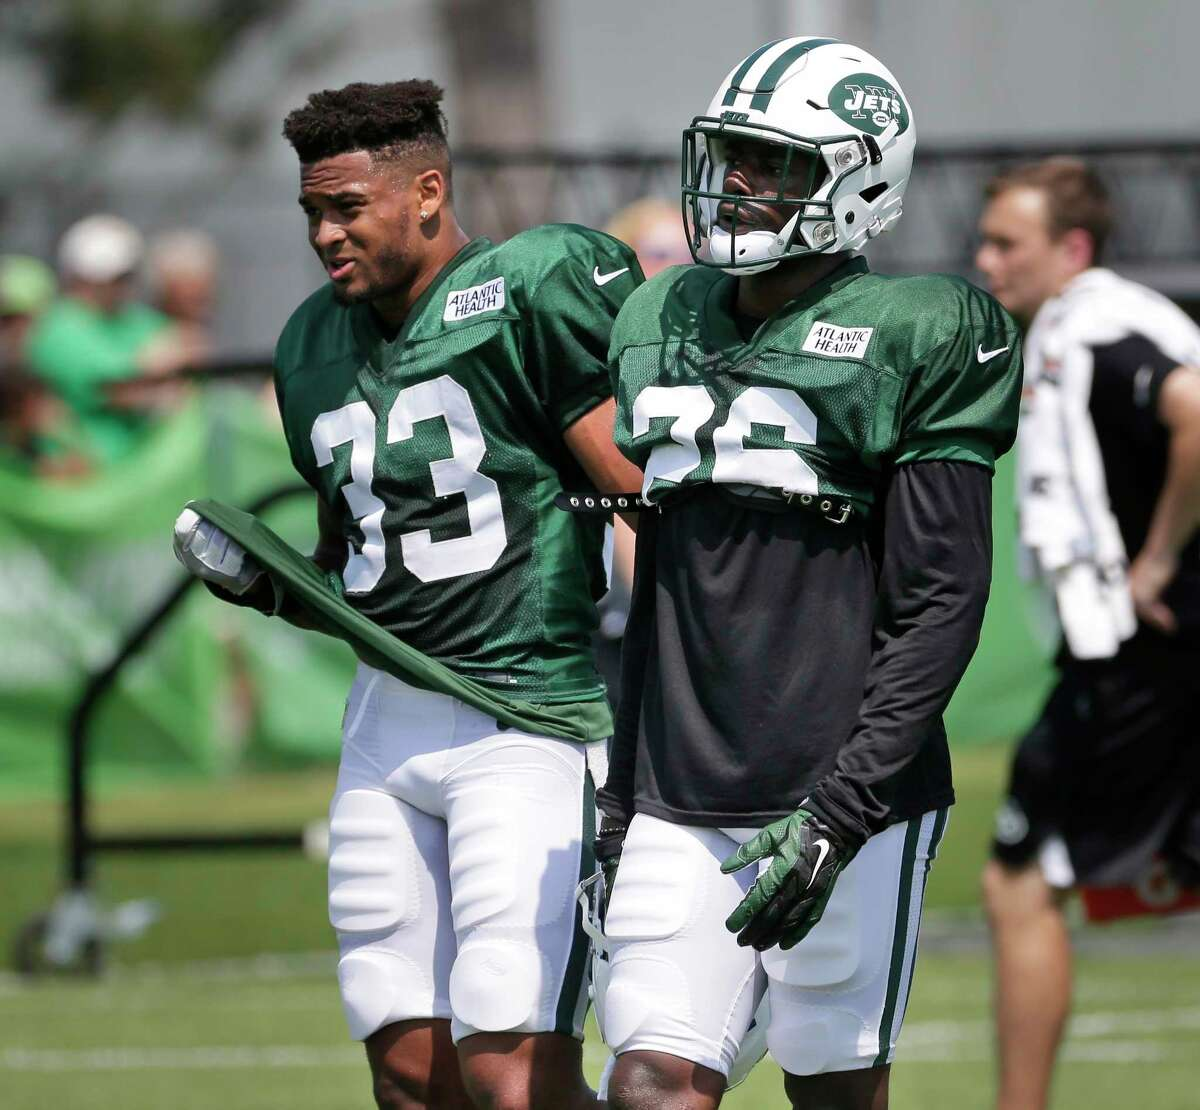 New York Jets' safeties Marcus Maye, right, and Jamal Adams walk together during a NFL football training camp in Florham Park, N.J., Monday, July 31, 2017. (AP Photo/Seth Wenig) ORG XMIT: NJSW113